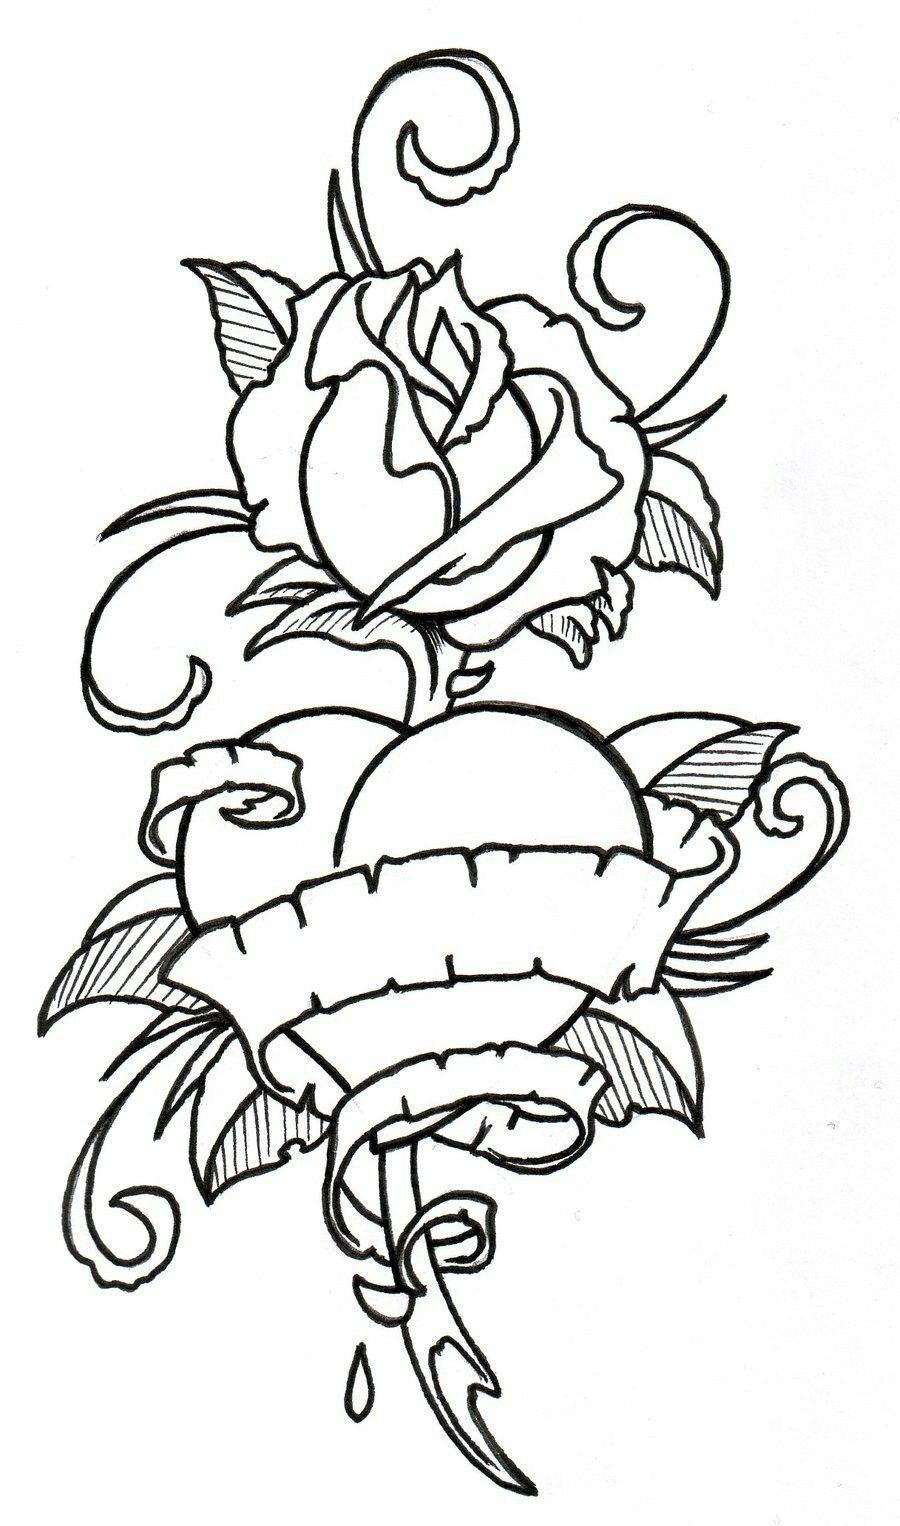 Pin by Angela Jones on doodles & designs   Outline drawings, Rose coloring pages, Coloring pages